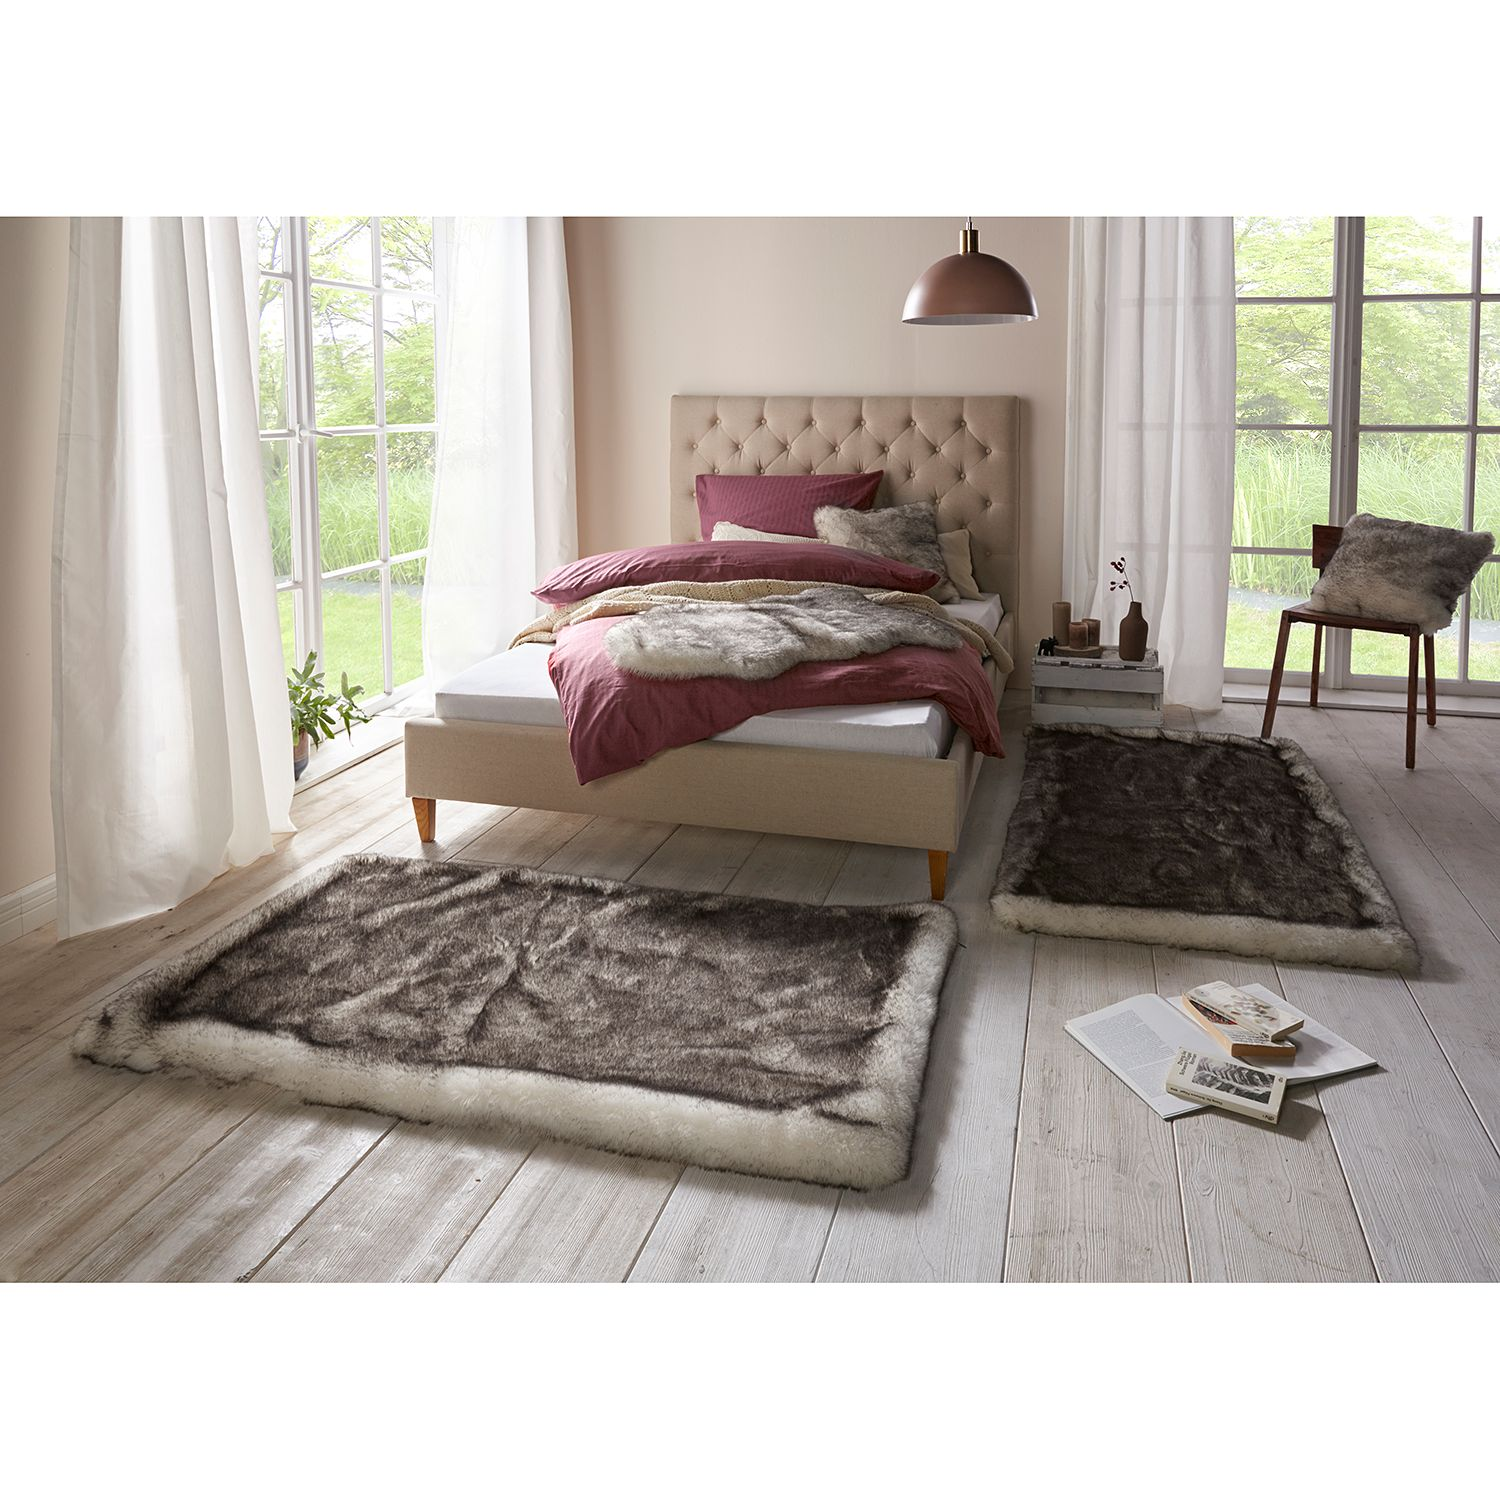 Bettumrandung Dipdye (2er-Set), Mint Rugs